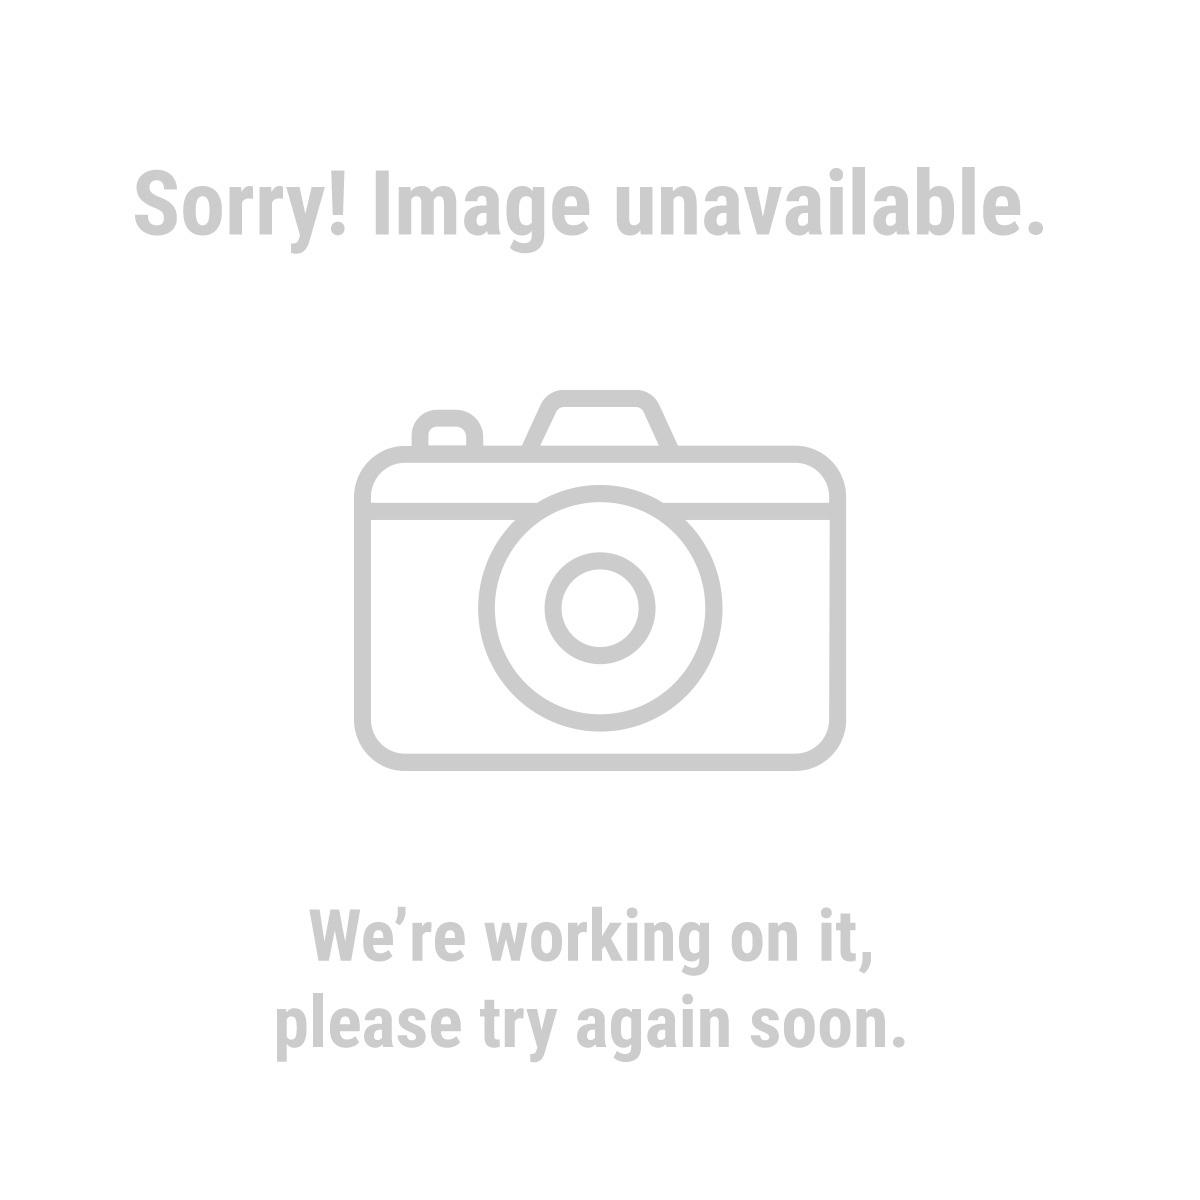 38757 44-7/8 in. Bimetal Bandsaw Blades, Pack of